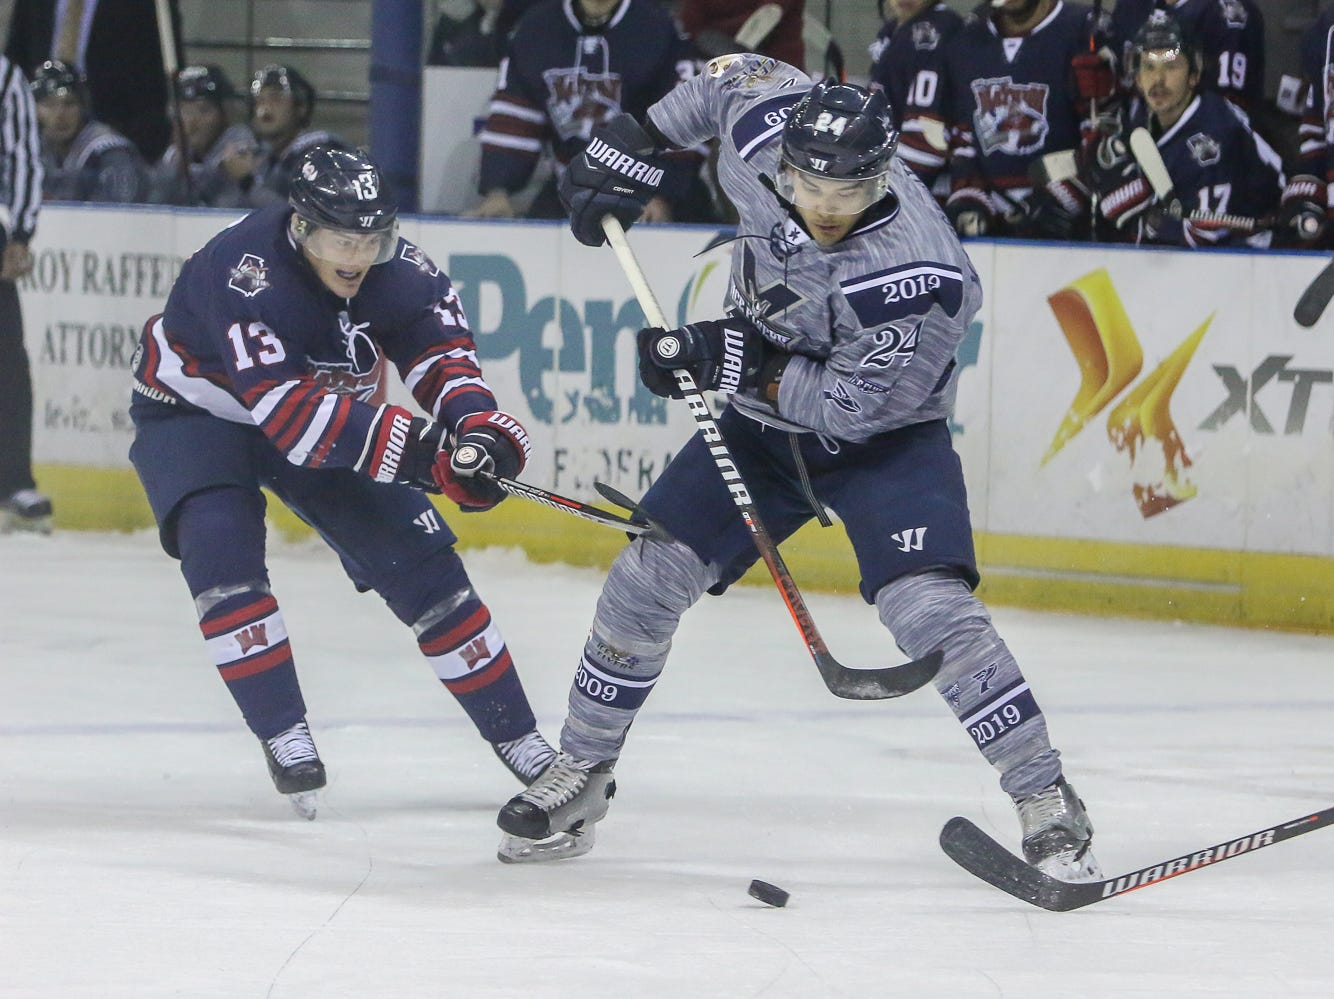 Pensacola's Eddie Matsushima (24) works to maintain control of the puck against Macon during the last home game of the regular season at the Pensacola Bay Center on Saturday, March 23, 2019. With over 4,300 people in attendance for Pensacola's 3-1 victory, the Ice Flyers mark six straight years of over 100,000 people at their home games each season. The team has won their last five games in a row and will finish out their last five games on the road before entering the playoffs in a couple of weeks.